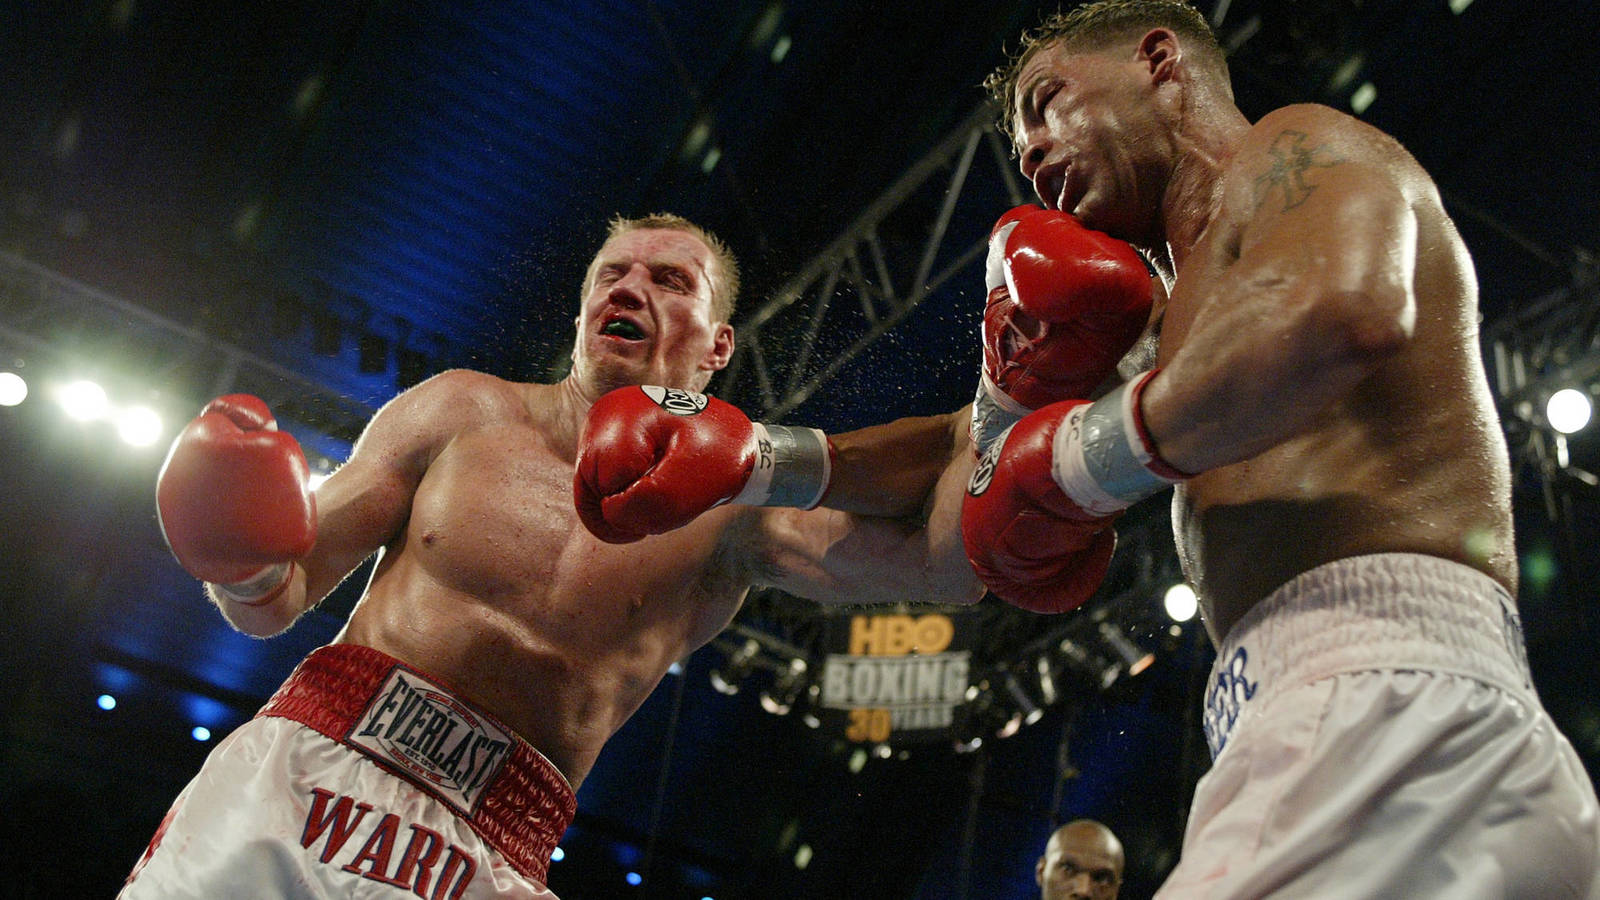 Alexis Texas Boxing best boxing rematches in the modern era | yardbarker